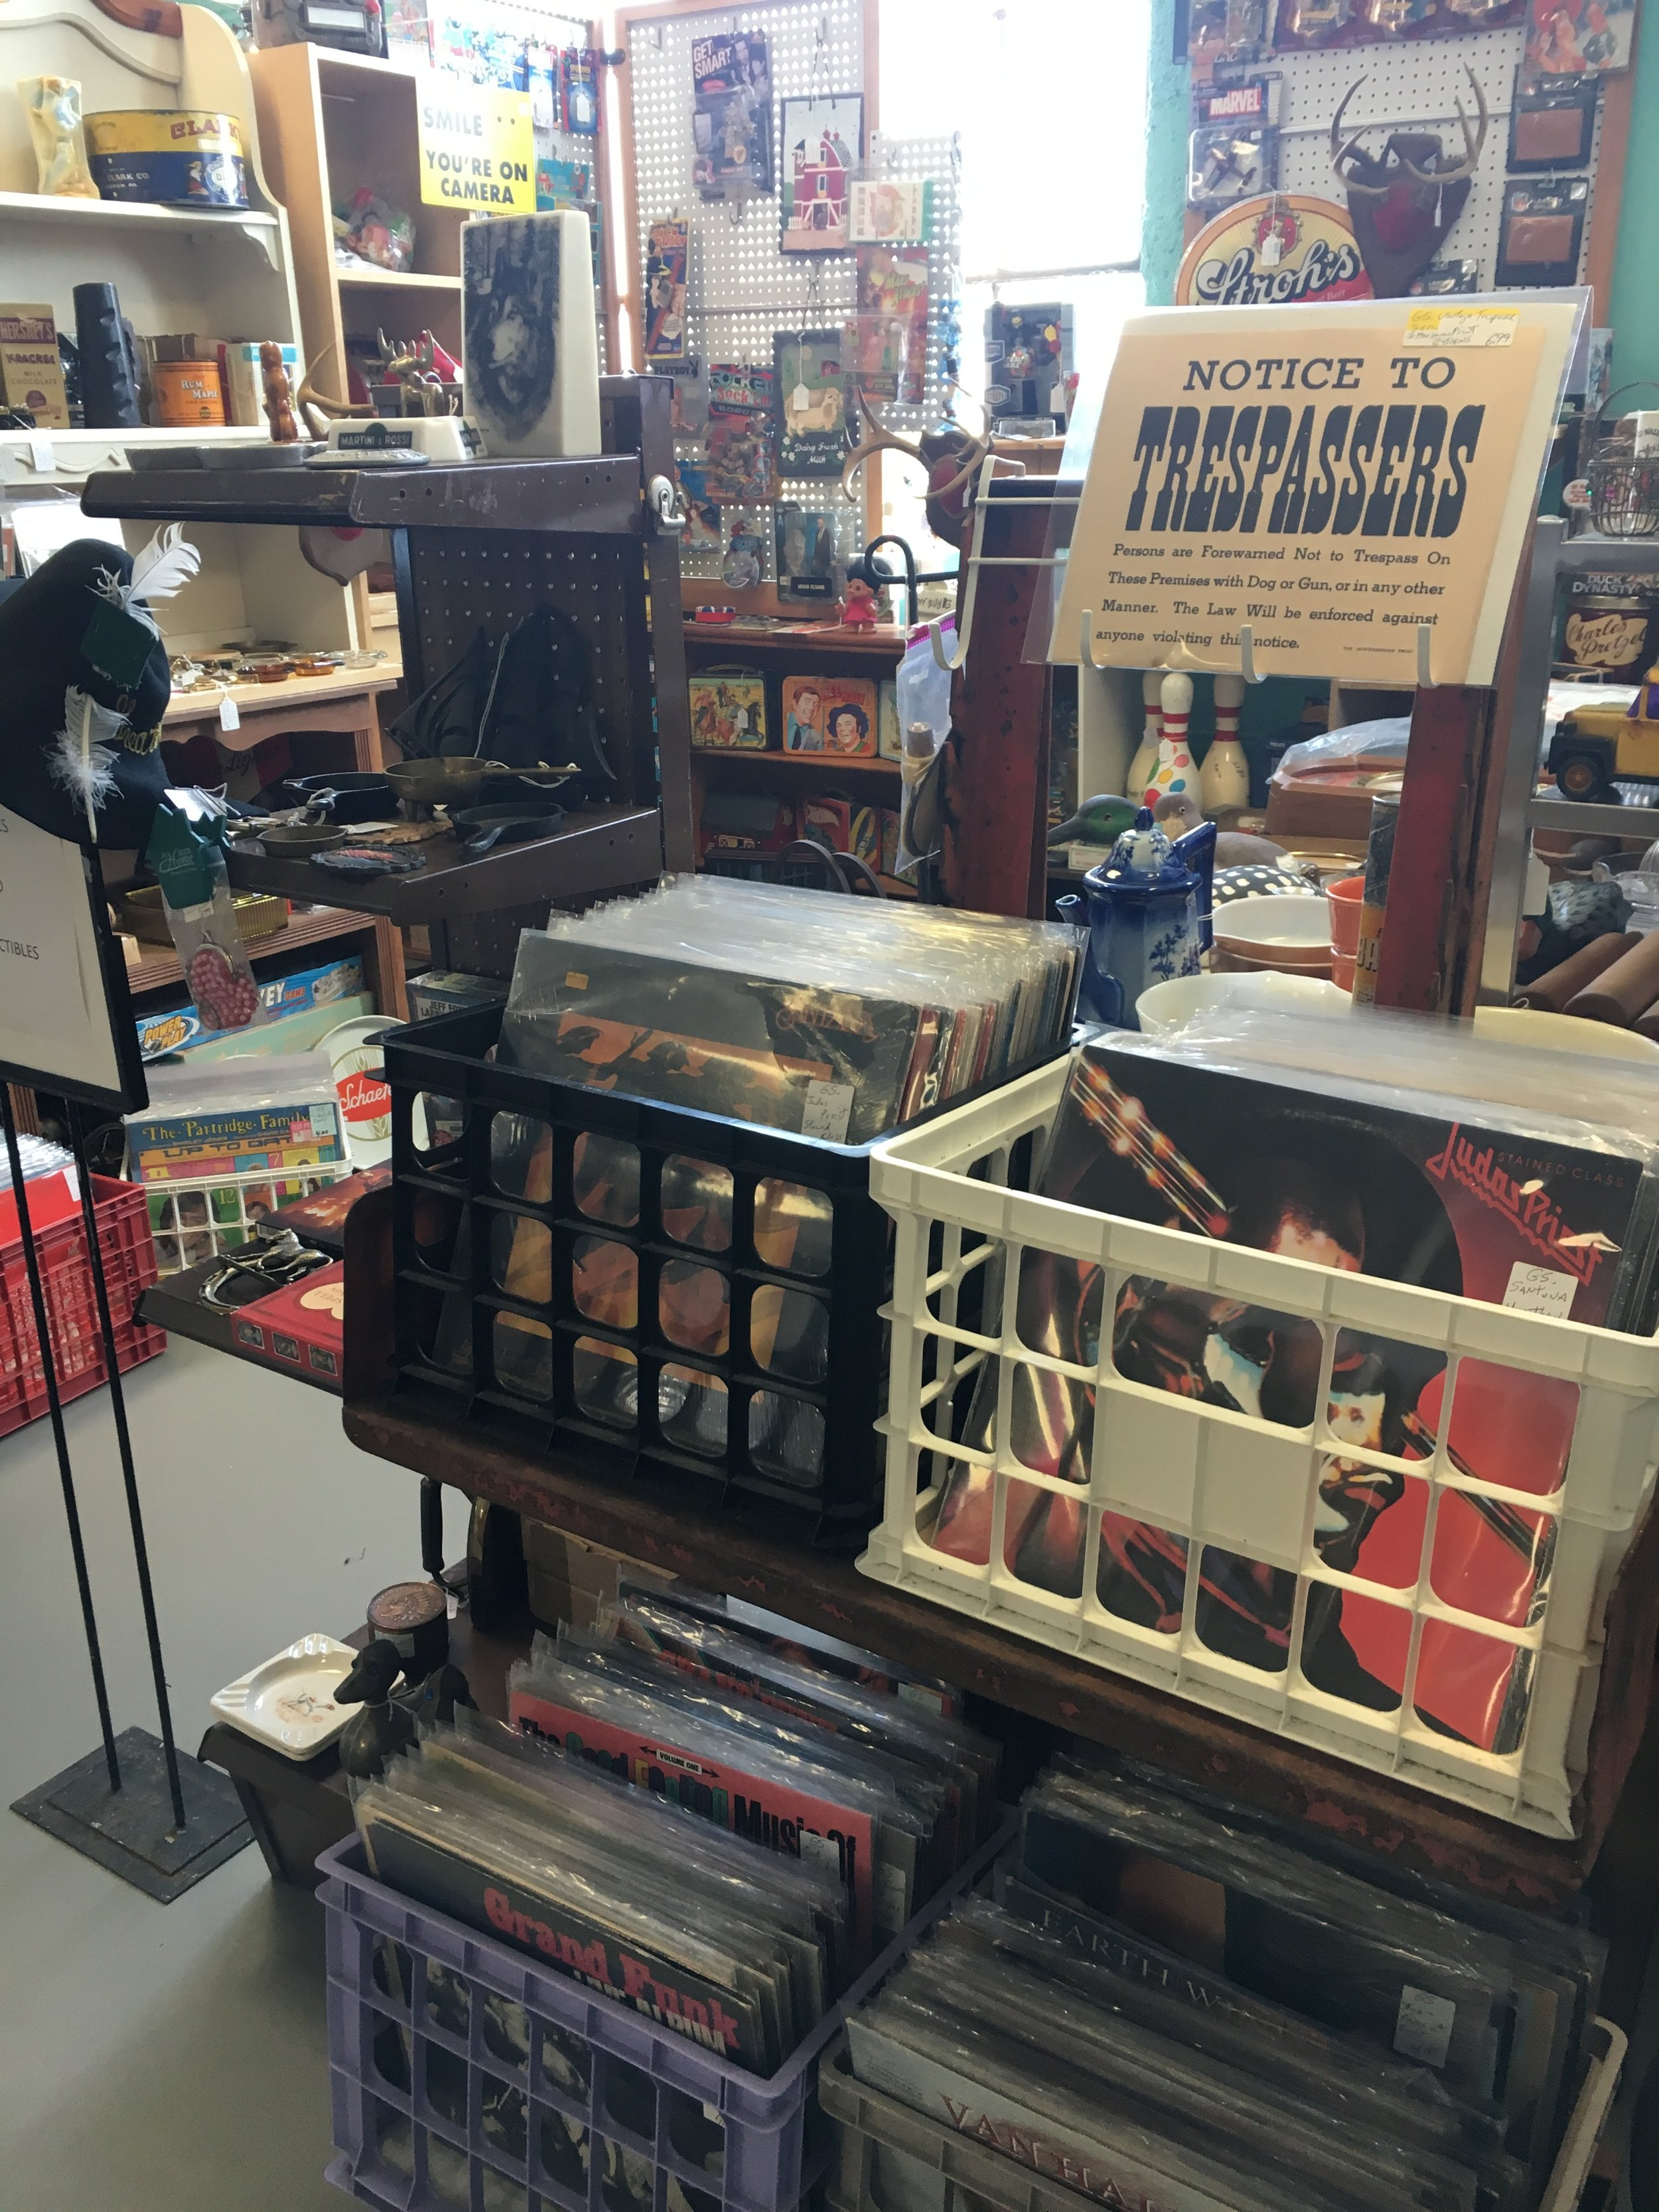 George's Antiques and Collectibles - Vintage collectibles and more!